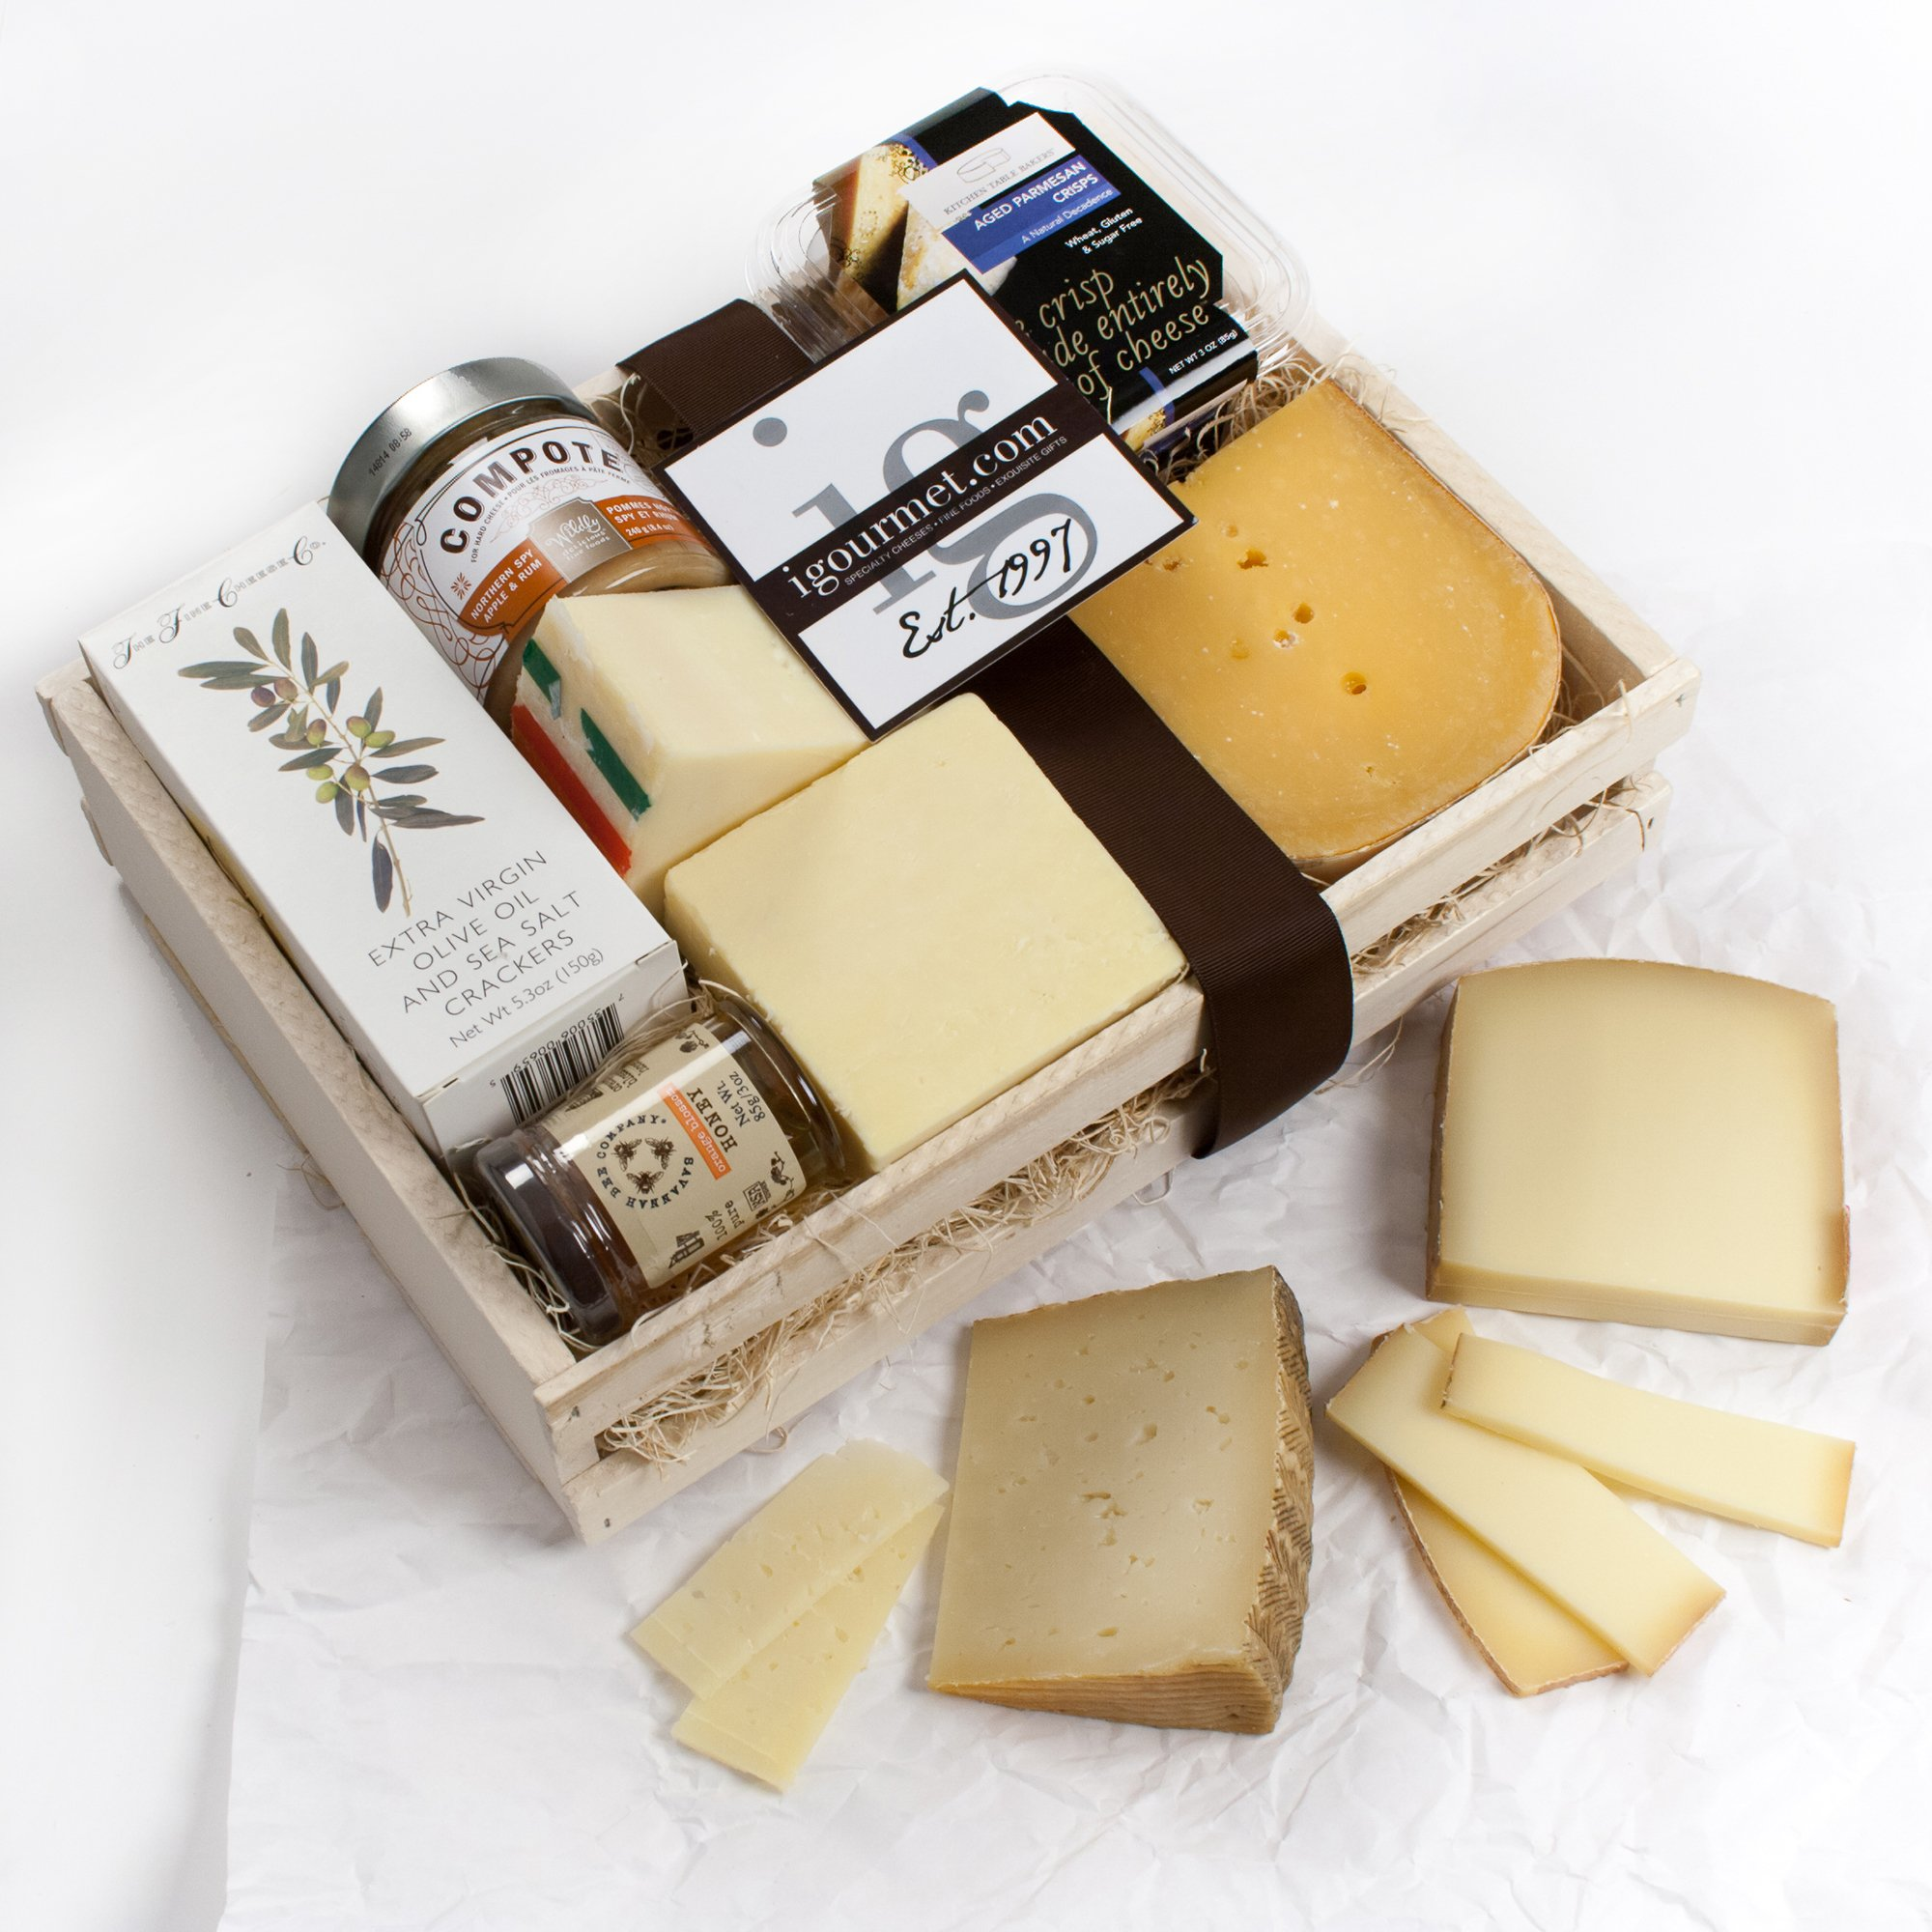 KaBloom Gift Basket Collection: The Extra Sharp Aged Cheese Gift Crate